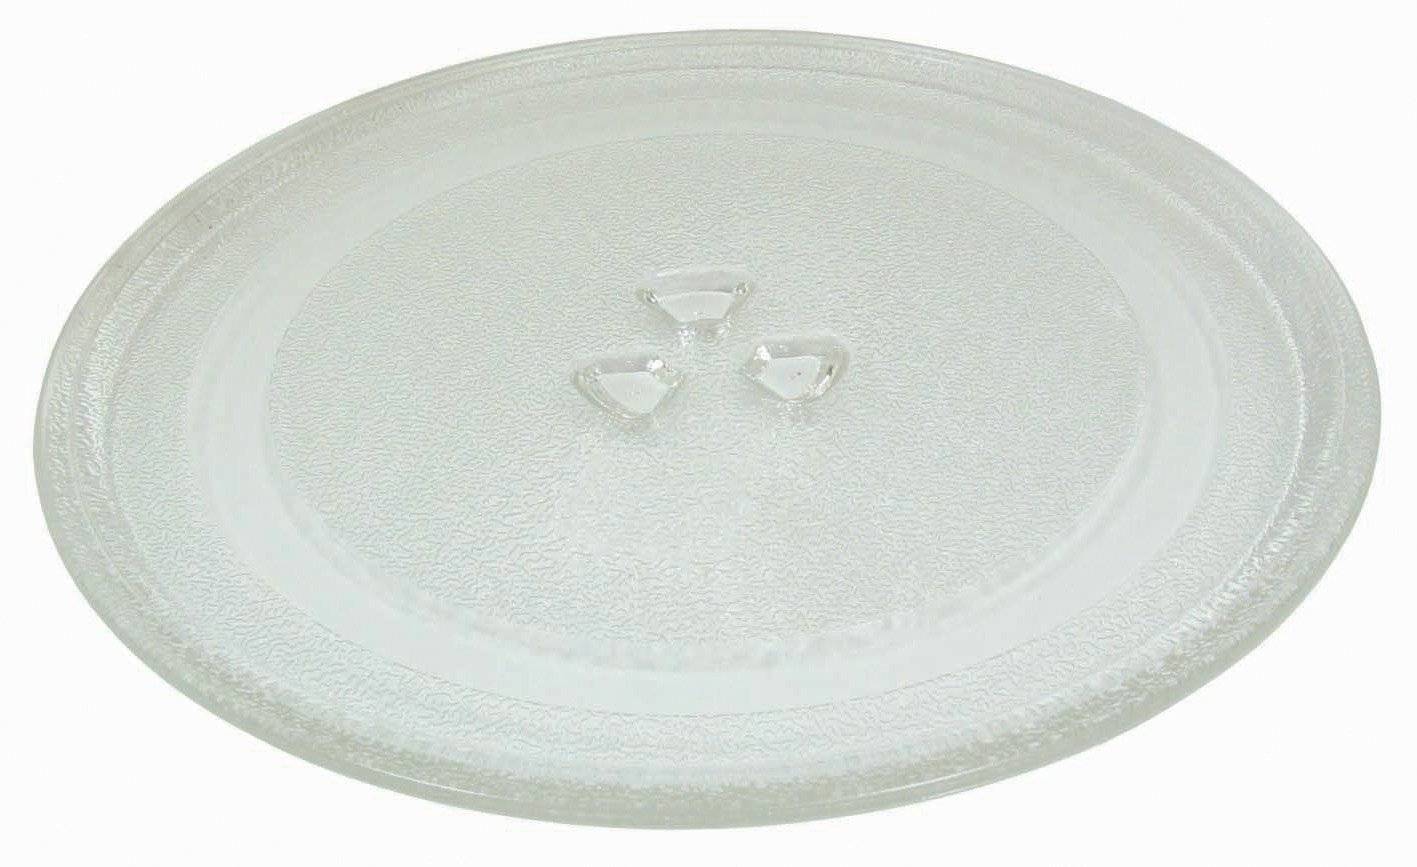 "12.75"" Sears, Kenmore and LG -Compatible Microwave Glass Plate/Microwave Glass Turntable Plate Replacement - 12 3/4"" Plate, Equivalent to 1B71961E, 1B71961F and 507049"